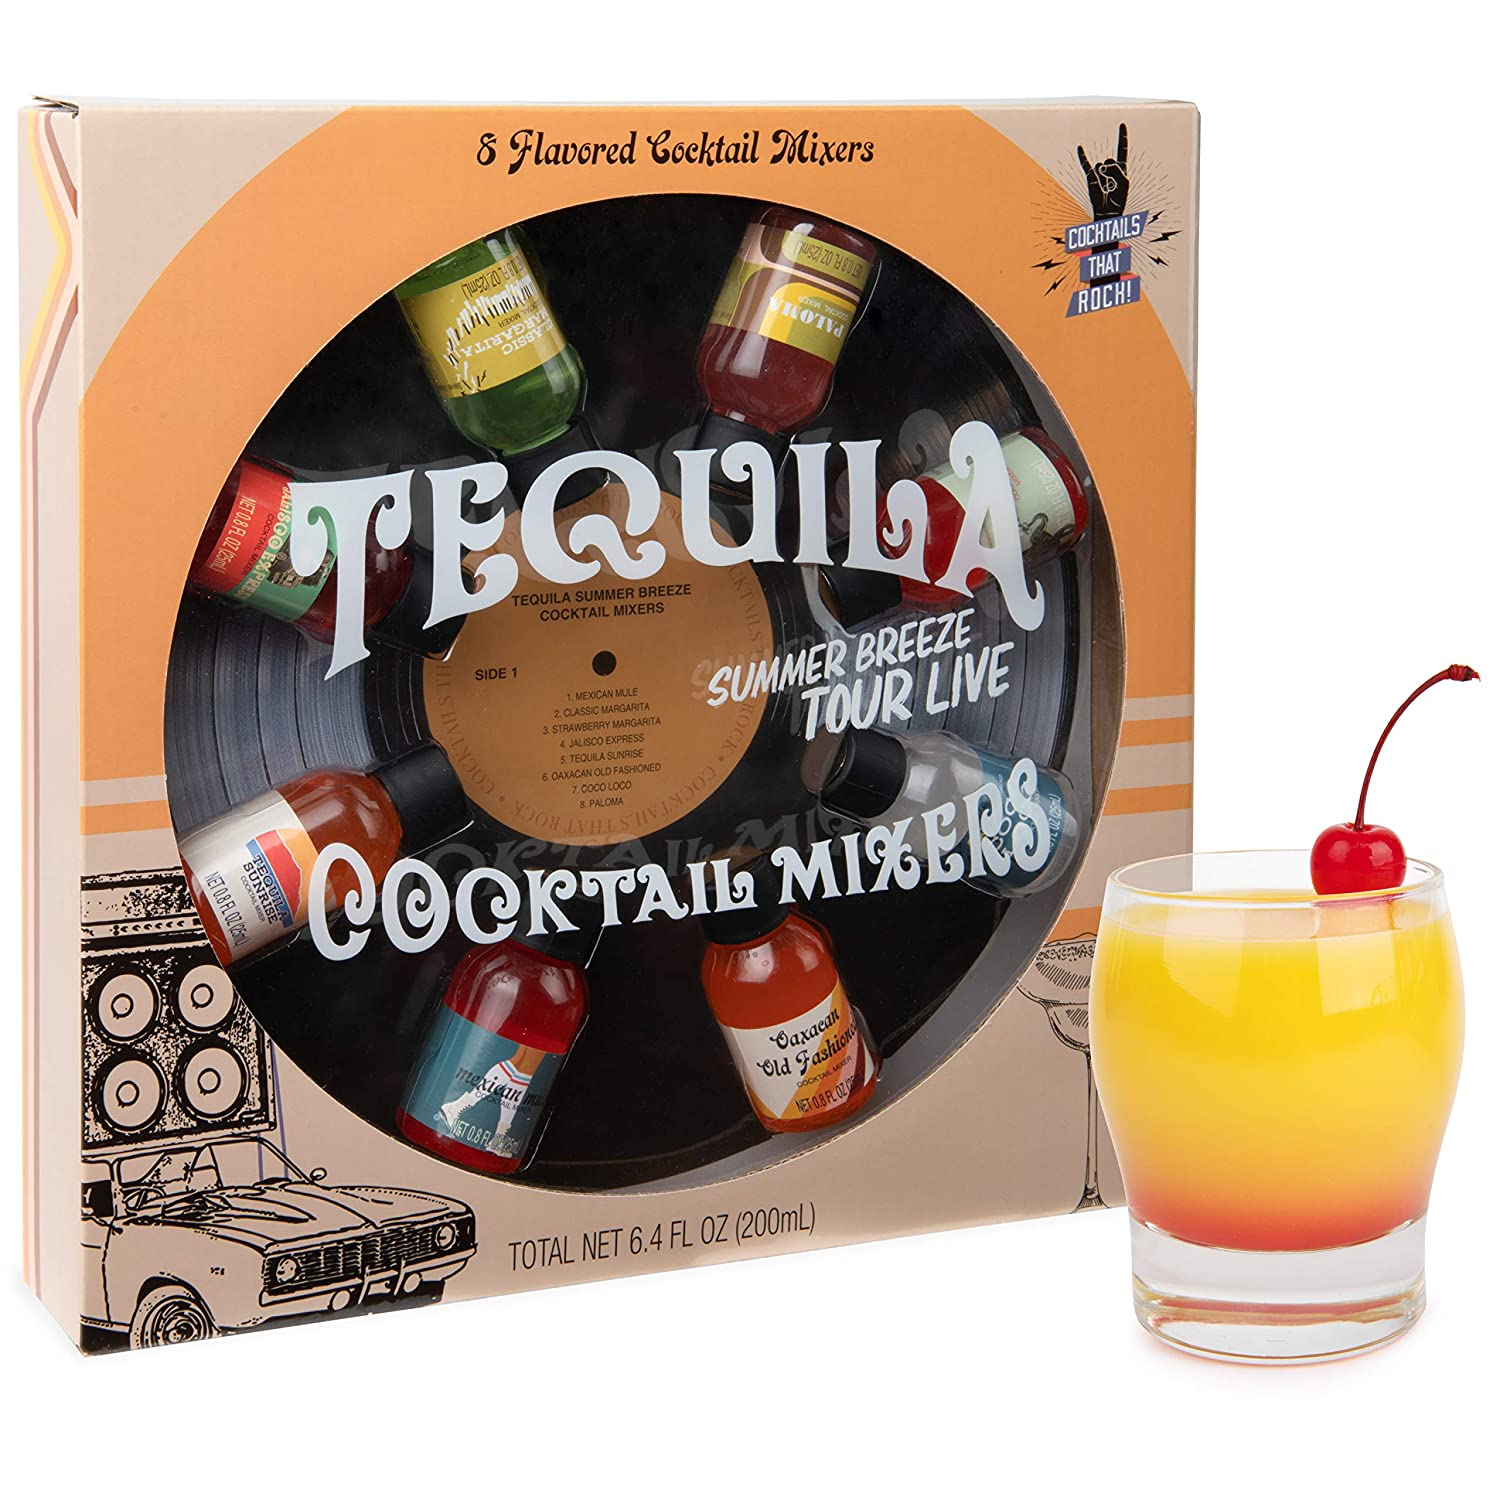 Thoughtfully Gifts, Greatest Hits Cocktail Mixers for Tequila Gift Set, Flavors Include Tequila Sunrise, Mexican Mule, Classic Margarita and More, Pack of 8 (Contains NO Alcohol)